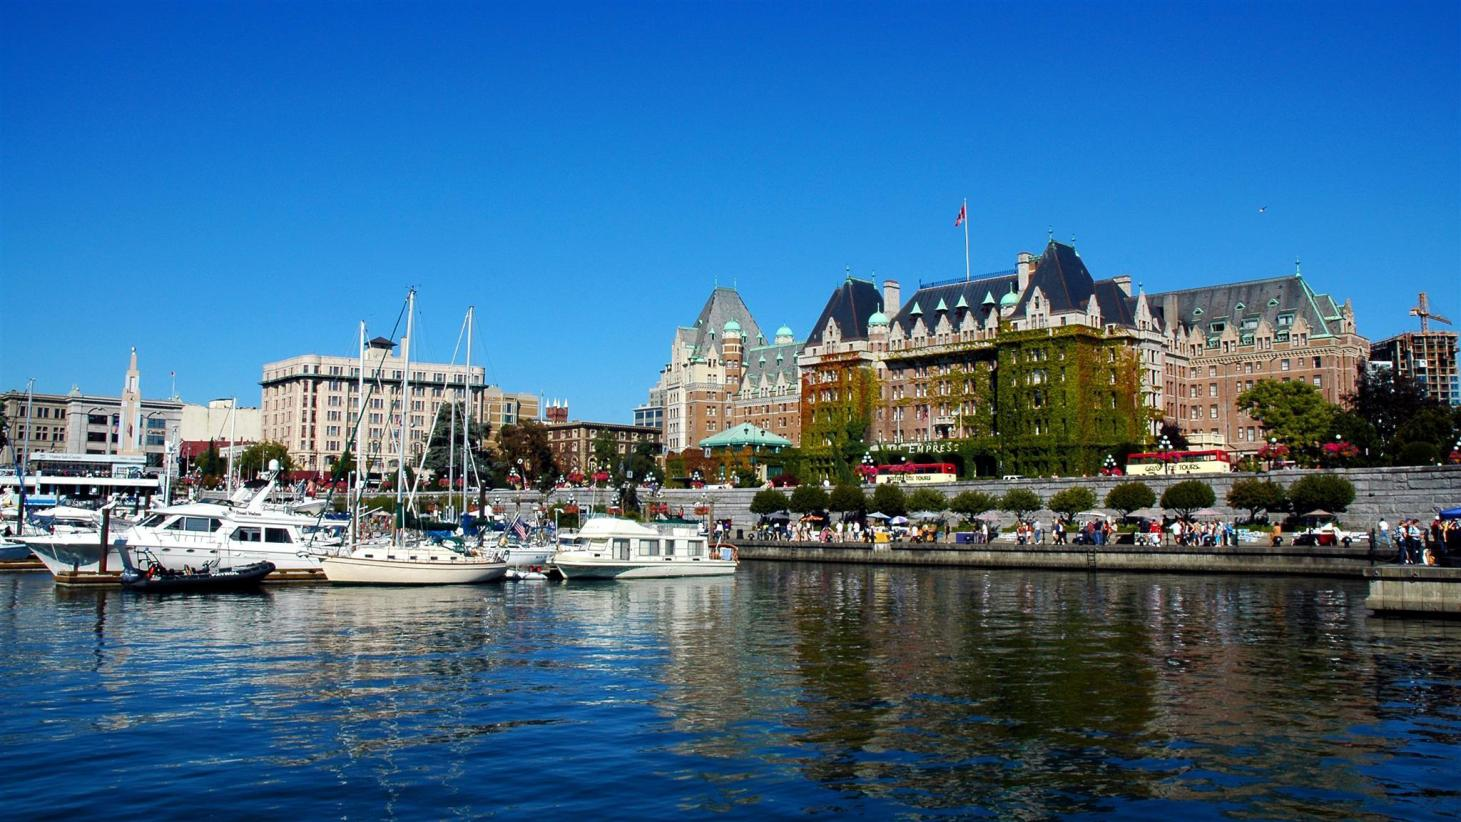 30 Best Victoria Bc Hotels Free Cancellation 2021 Price Lists Reviews Of The Best Hotels In Victoria Bc Canada